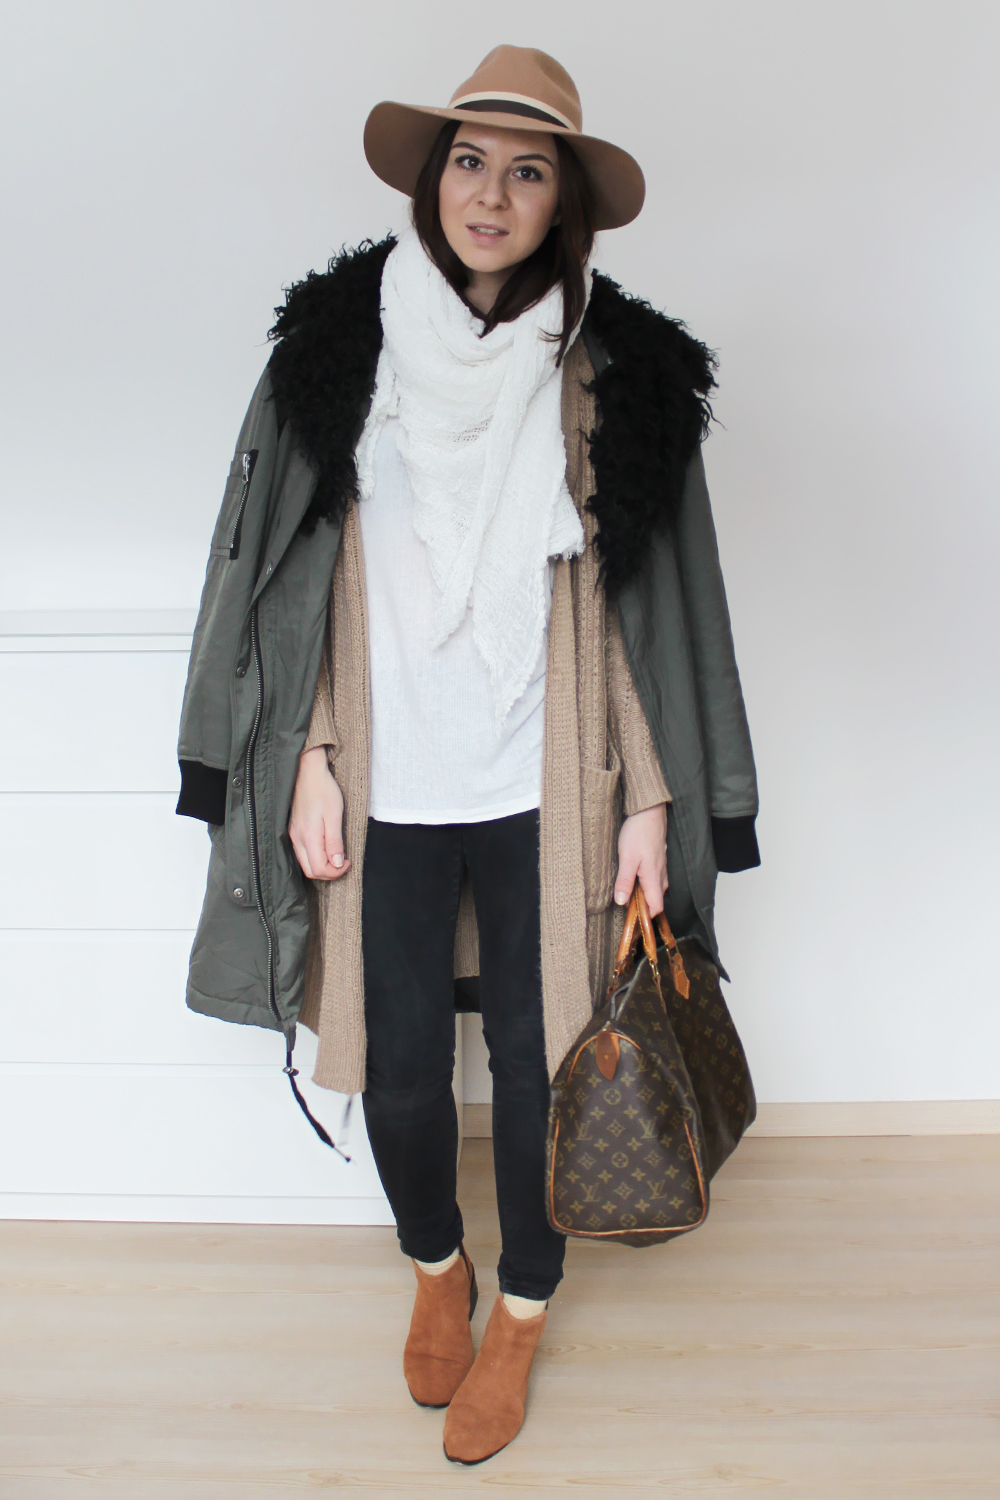 who is mocca, fashionblog tirol, blogger, everyday looks, alltagsoutfit, weekly wardrobe review, sarenza, topshop, zalando, cardigan, streetstyle